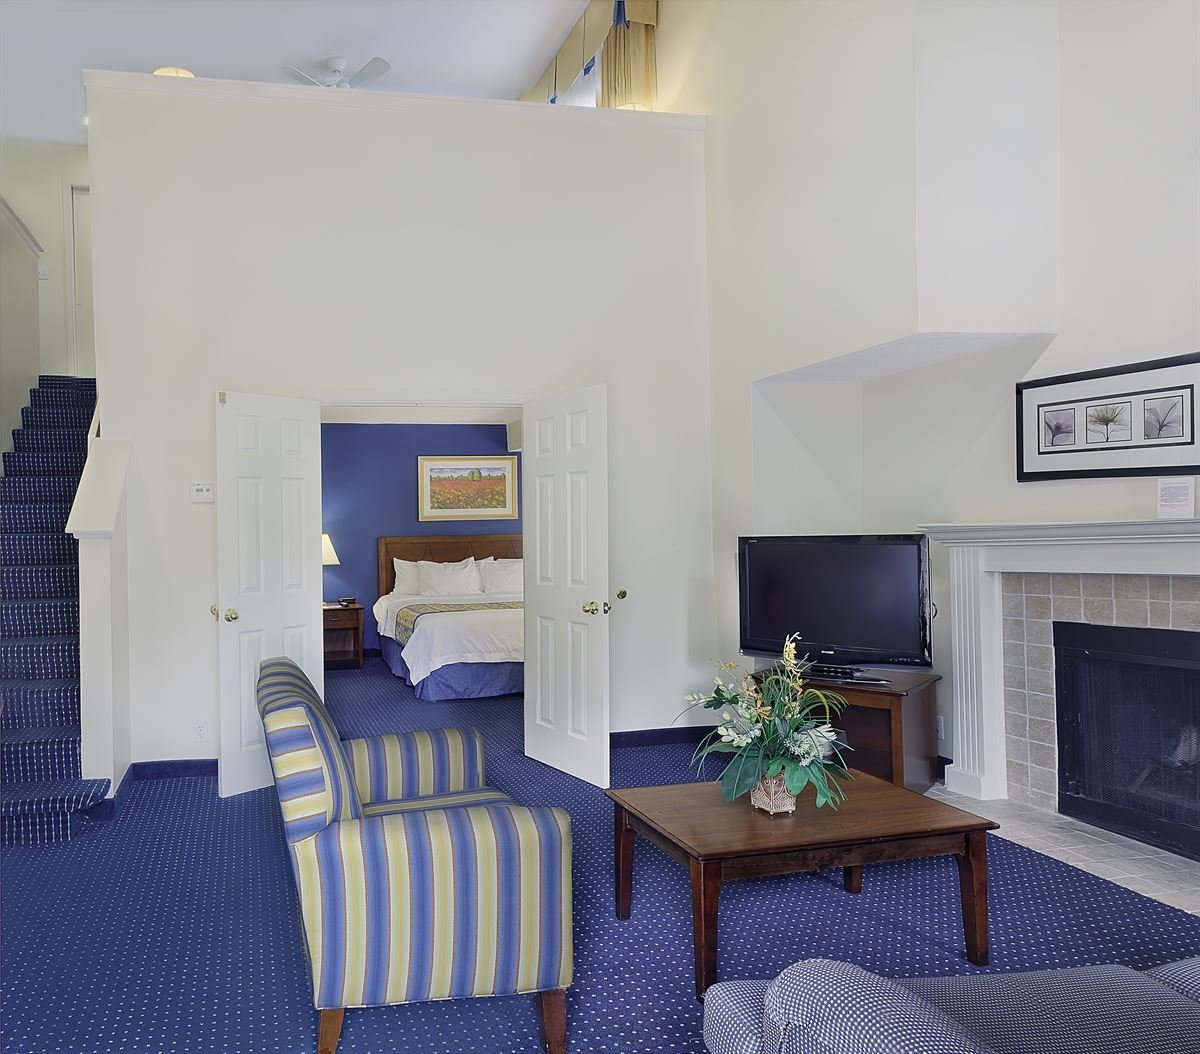 Best Hotel In Charlotte North Carolina Cloverleaf Suites With Pictures